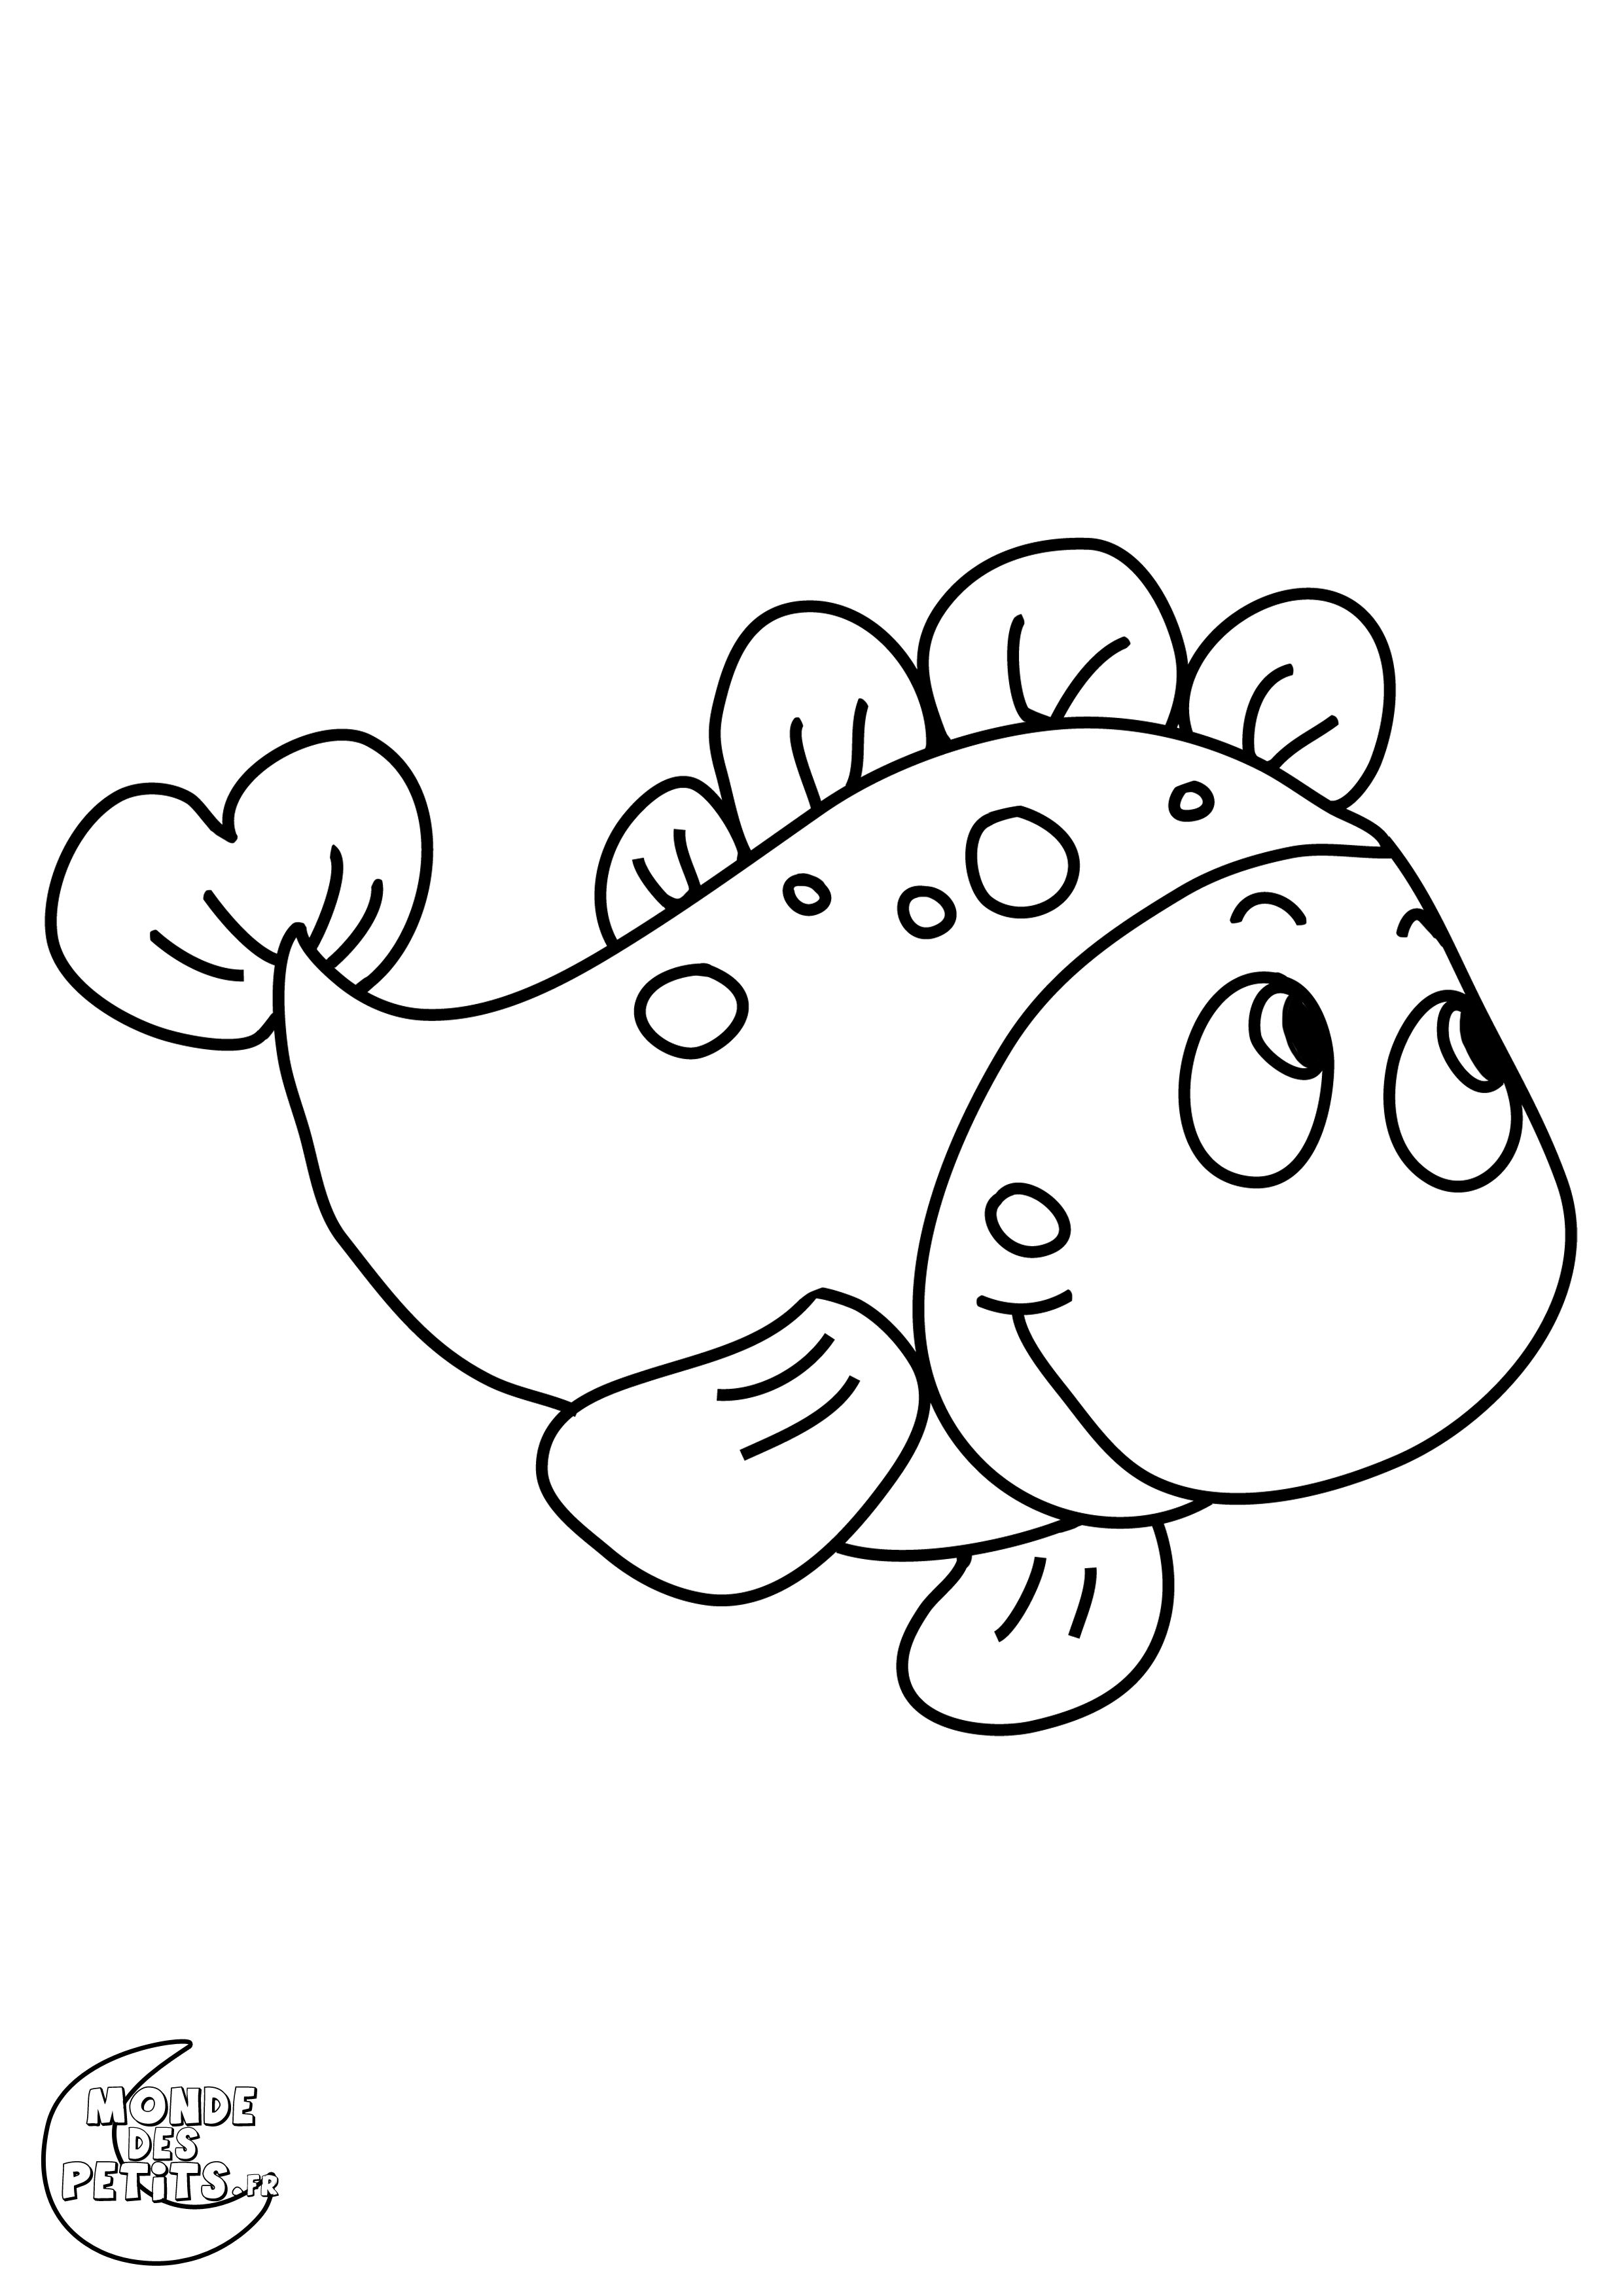 Coloriage Poisson A Colorier Dessin A Imprimer Fish Coloring Page Fathers Day Crafts Fish Template